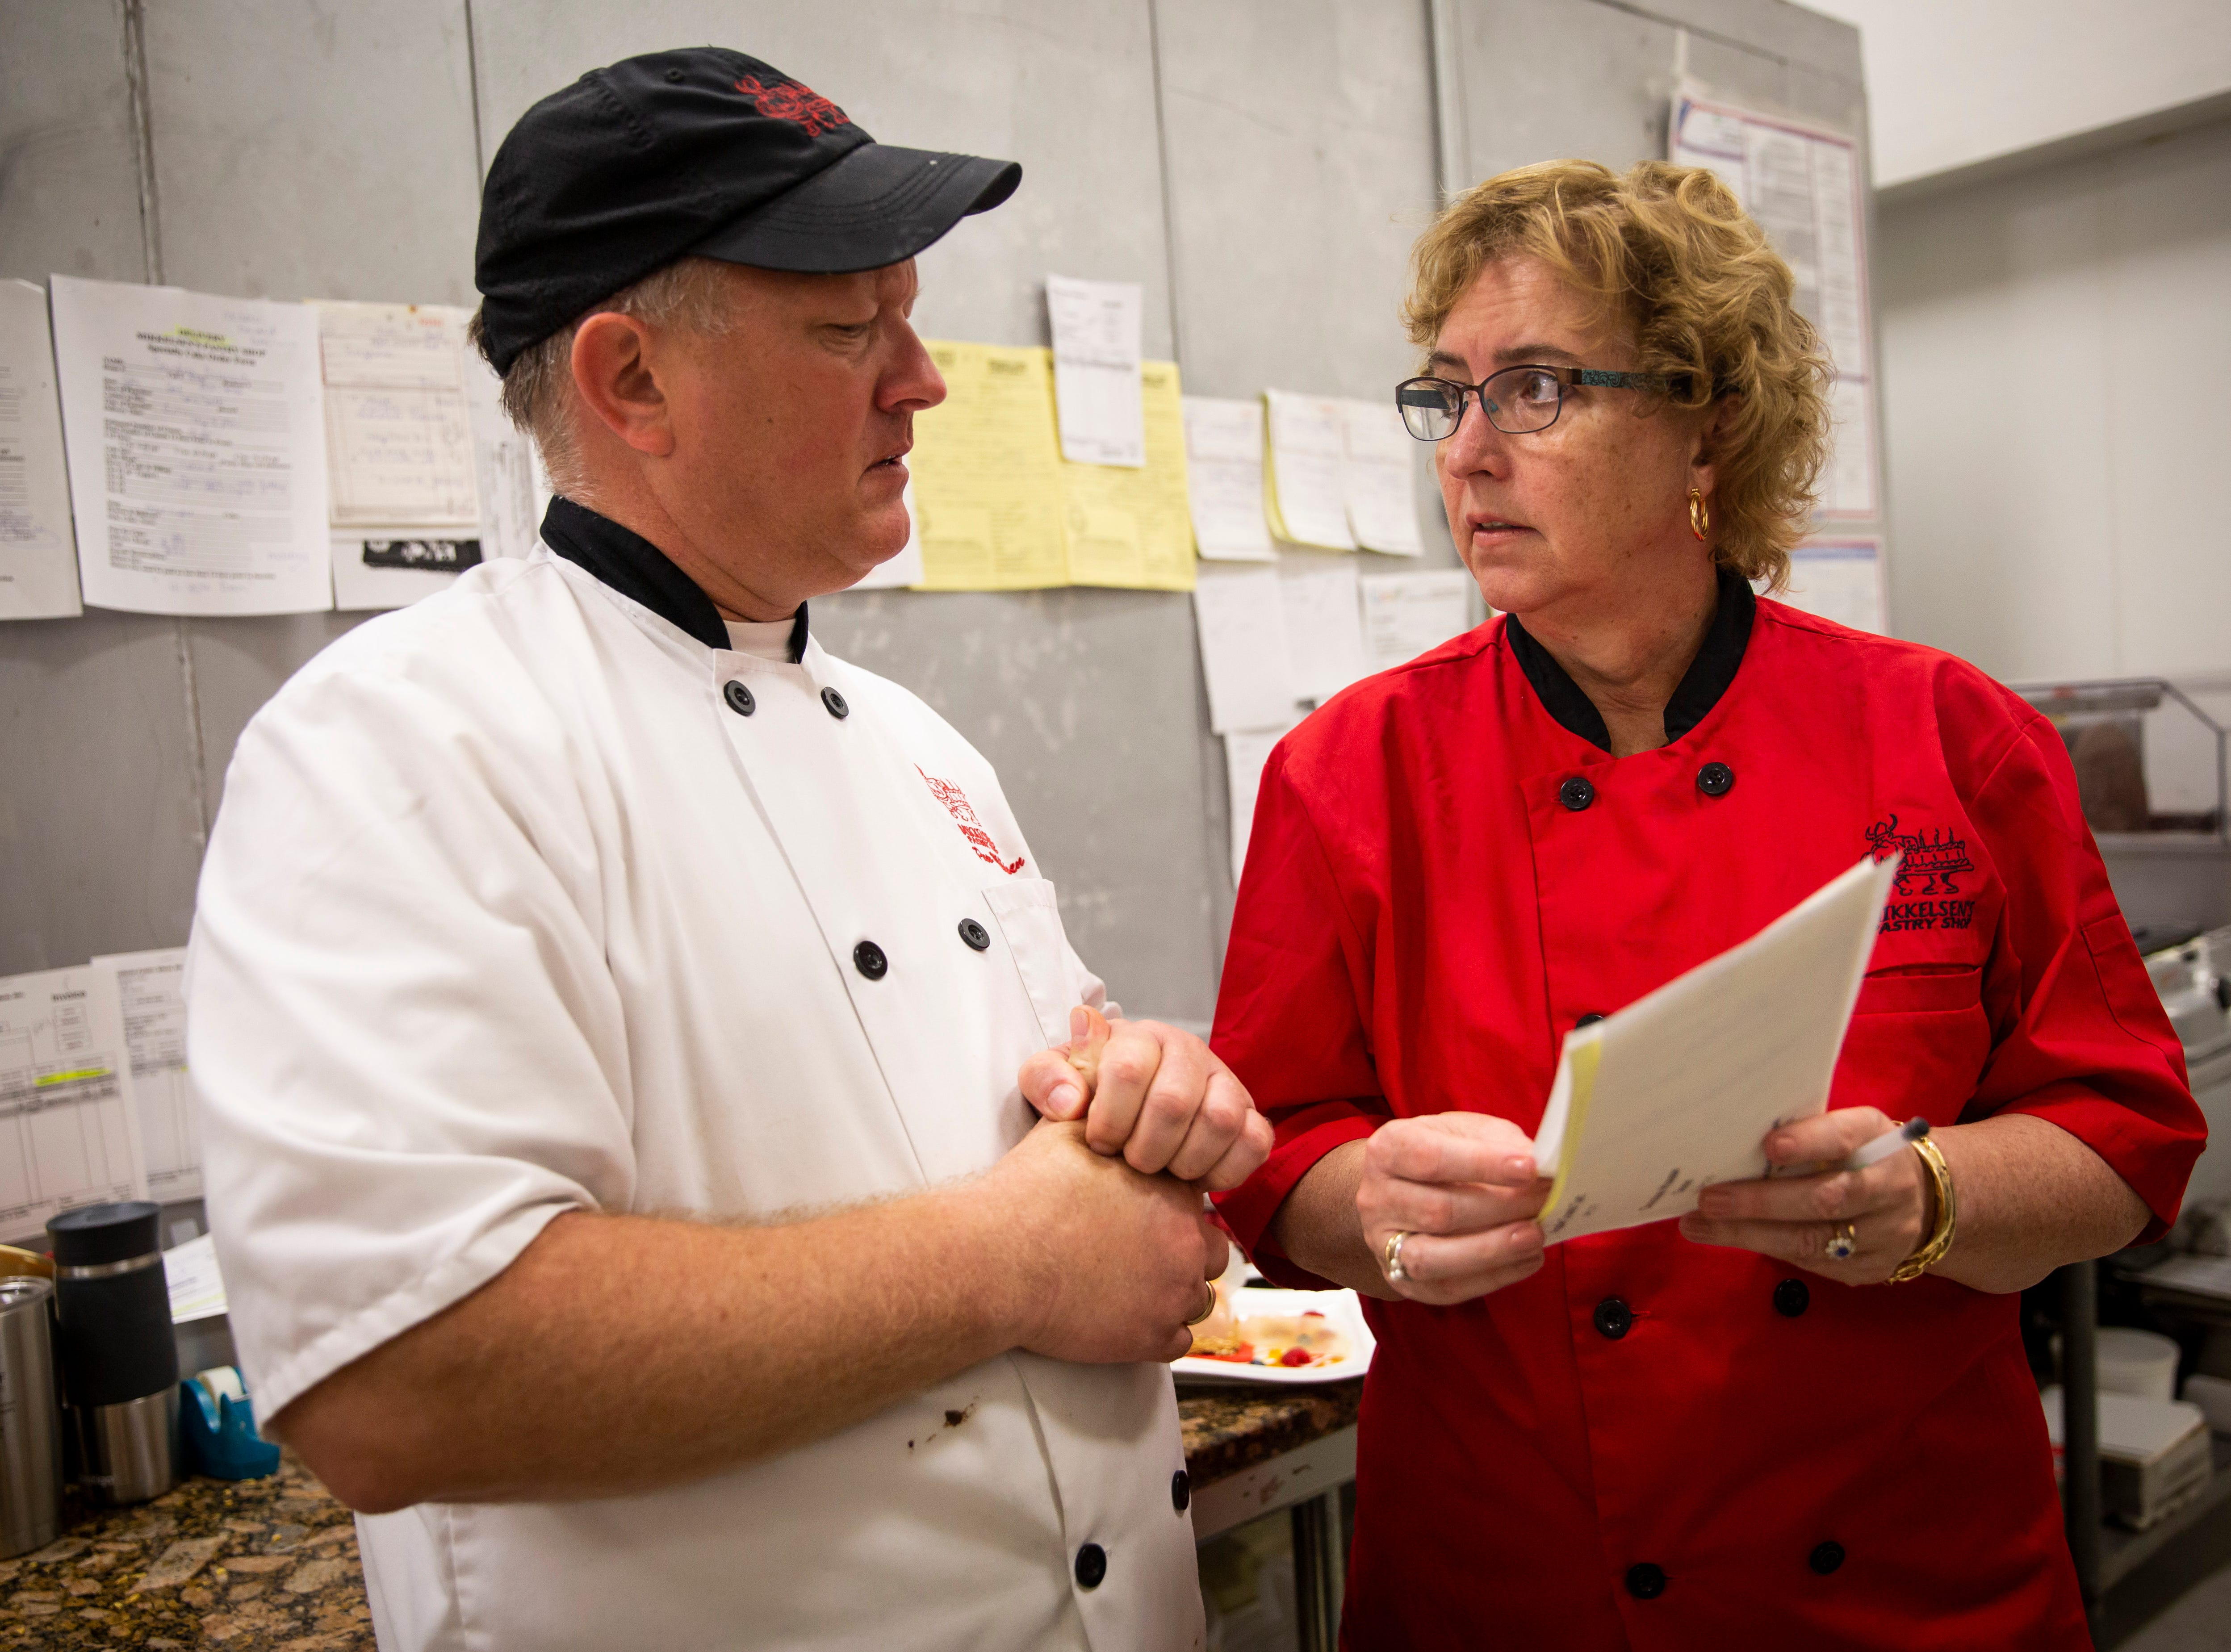 Elizabeth Mikkelsen asks Paw Mikkelsen about an order at Mikkelsen's Pastry Shop in North Naples on Thursday, Feb. 7, 2019. Typically Elizabeth handles retail orders and front-of-house business, while Paw takes care of ordering ingredients, communicating with chefs at area clubs and directing employees in the kitchen.